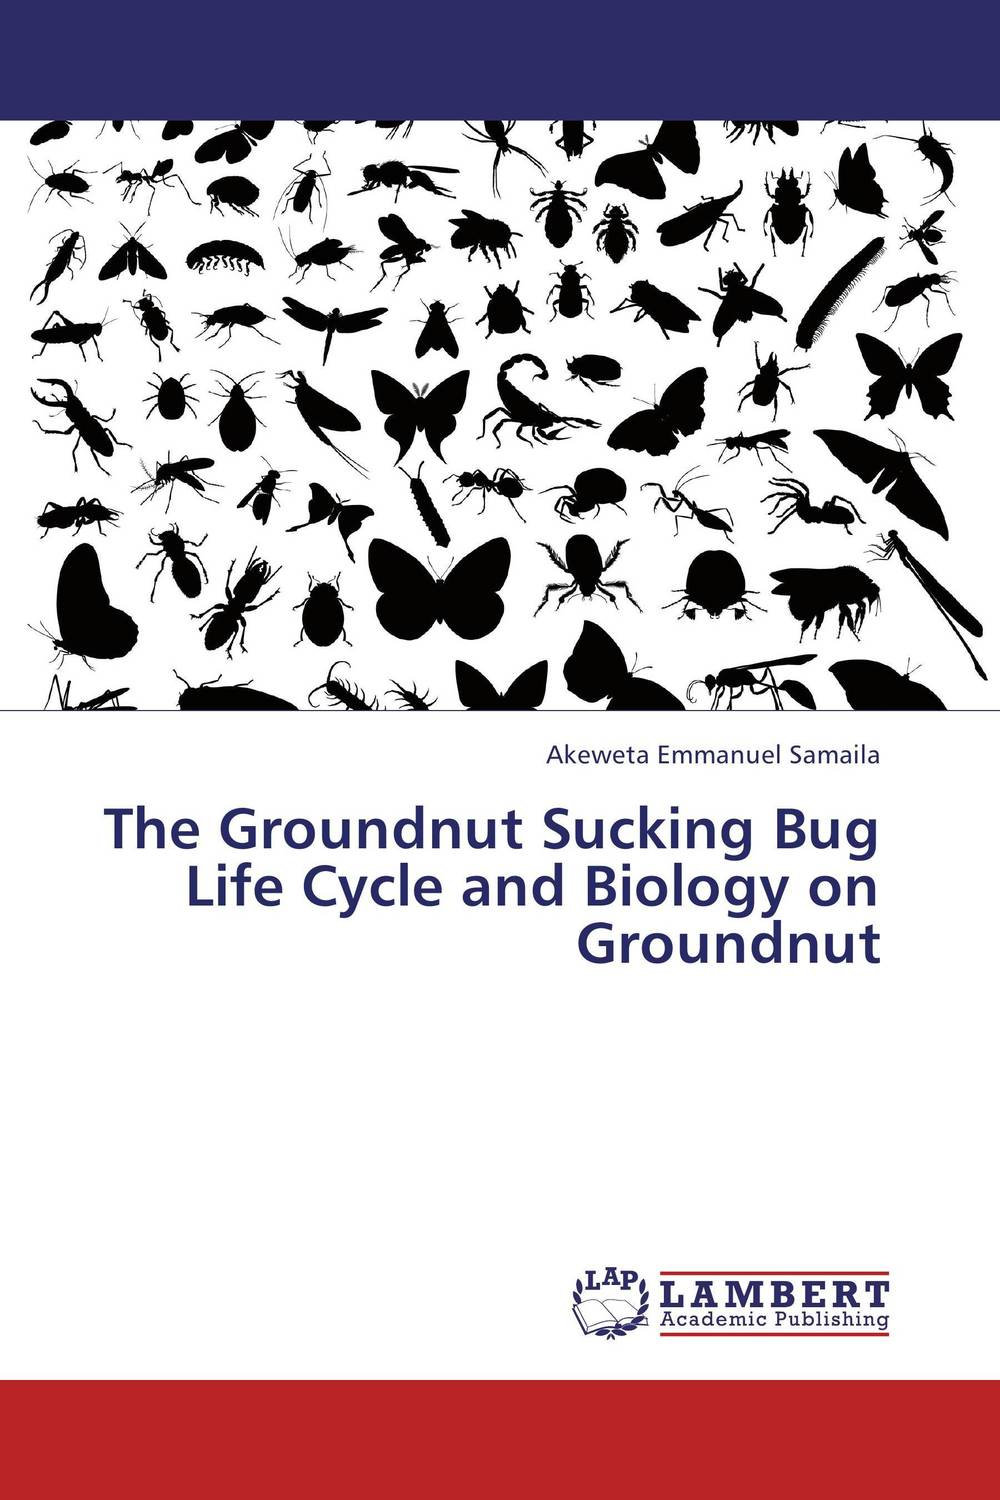 The Groundnut Sucking Bug Life Cycle and Biology on Groundnut like bug juice on a burger